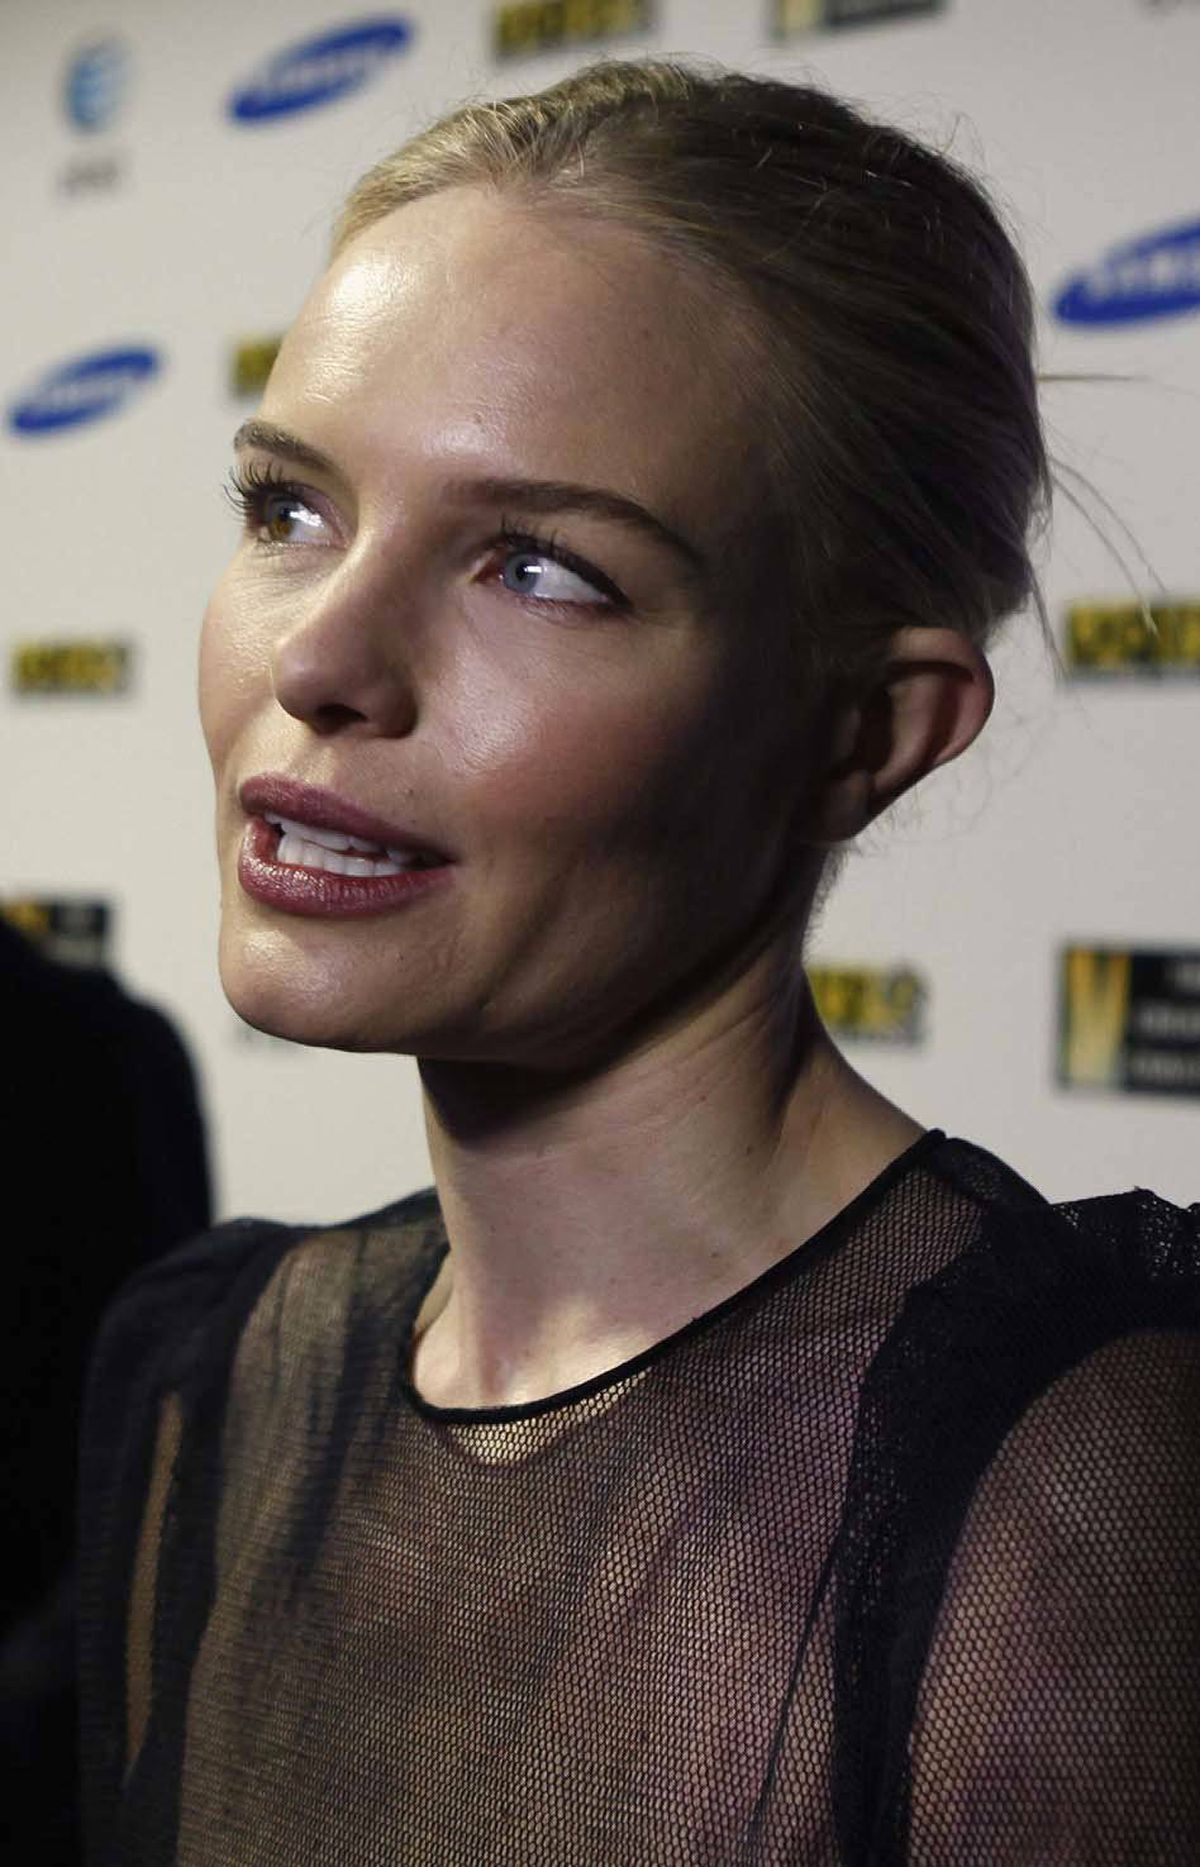 Kate Bosworth's head is way too big for her neck at the Sundance Film Festival in Park City, Utah, on Sunday.